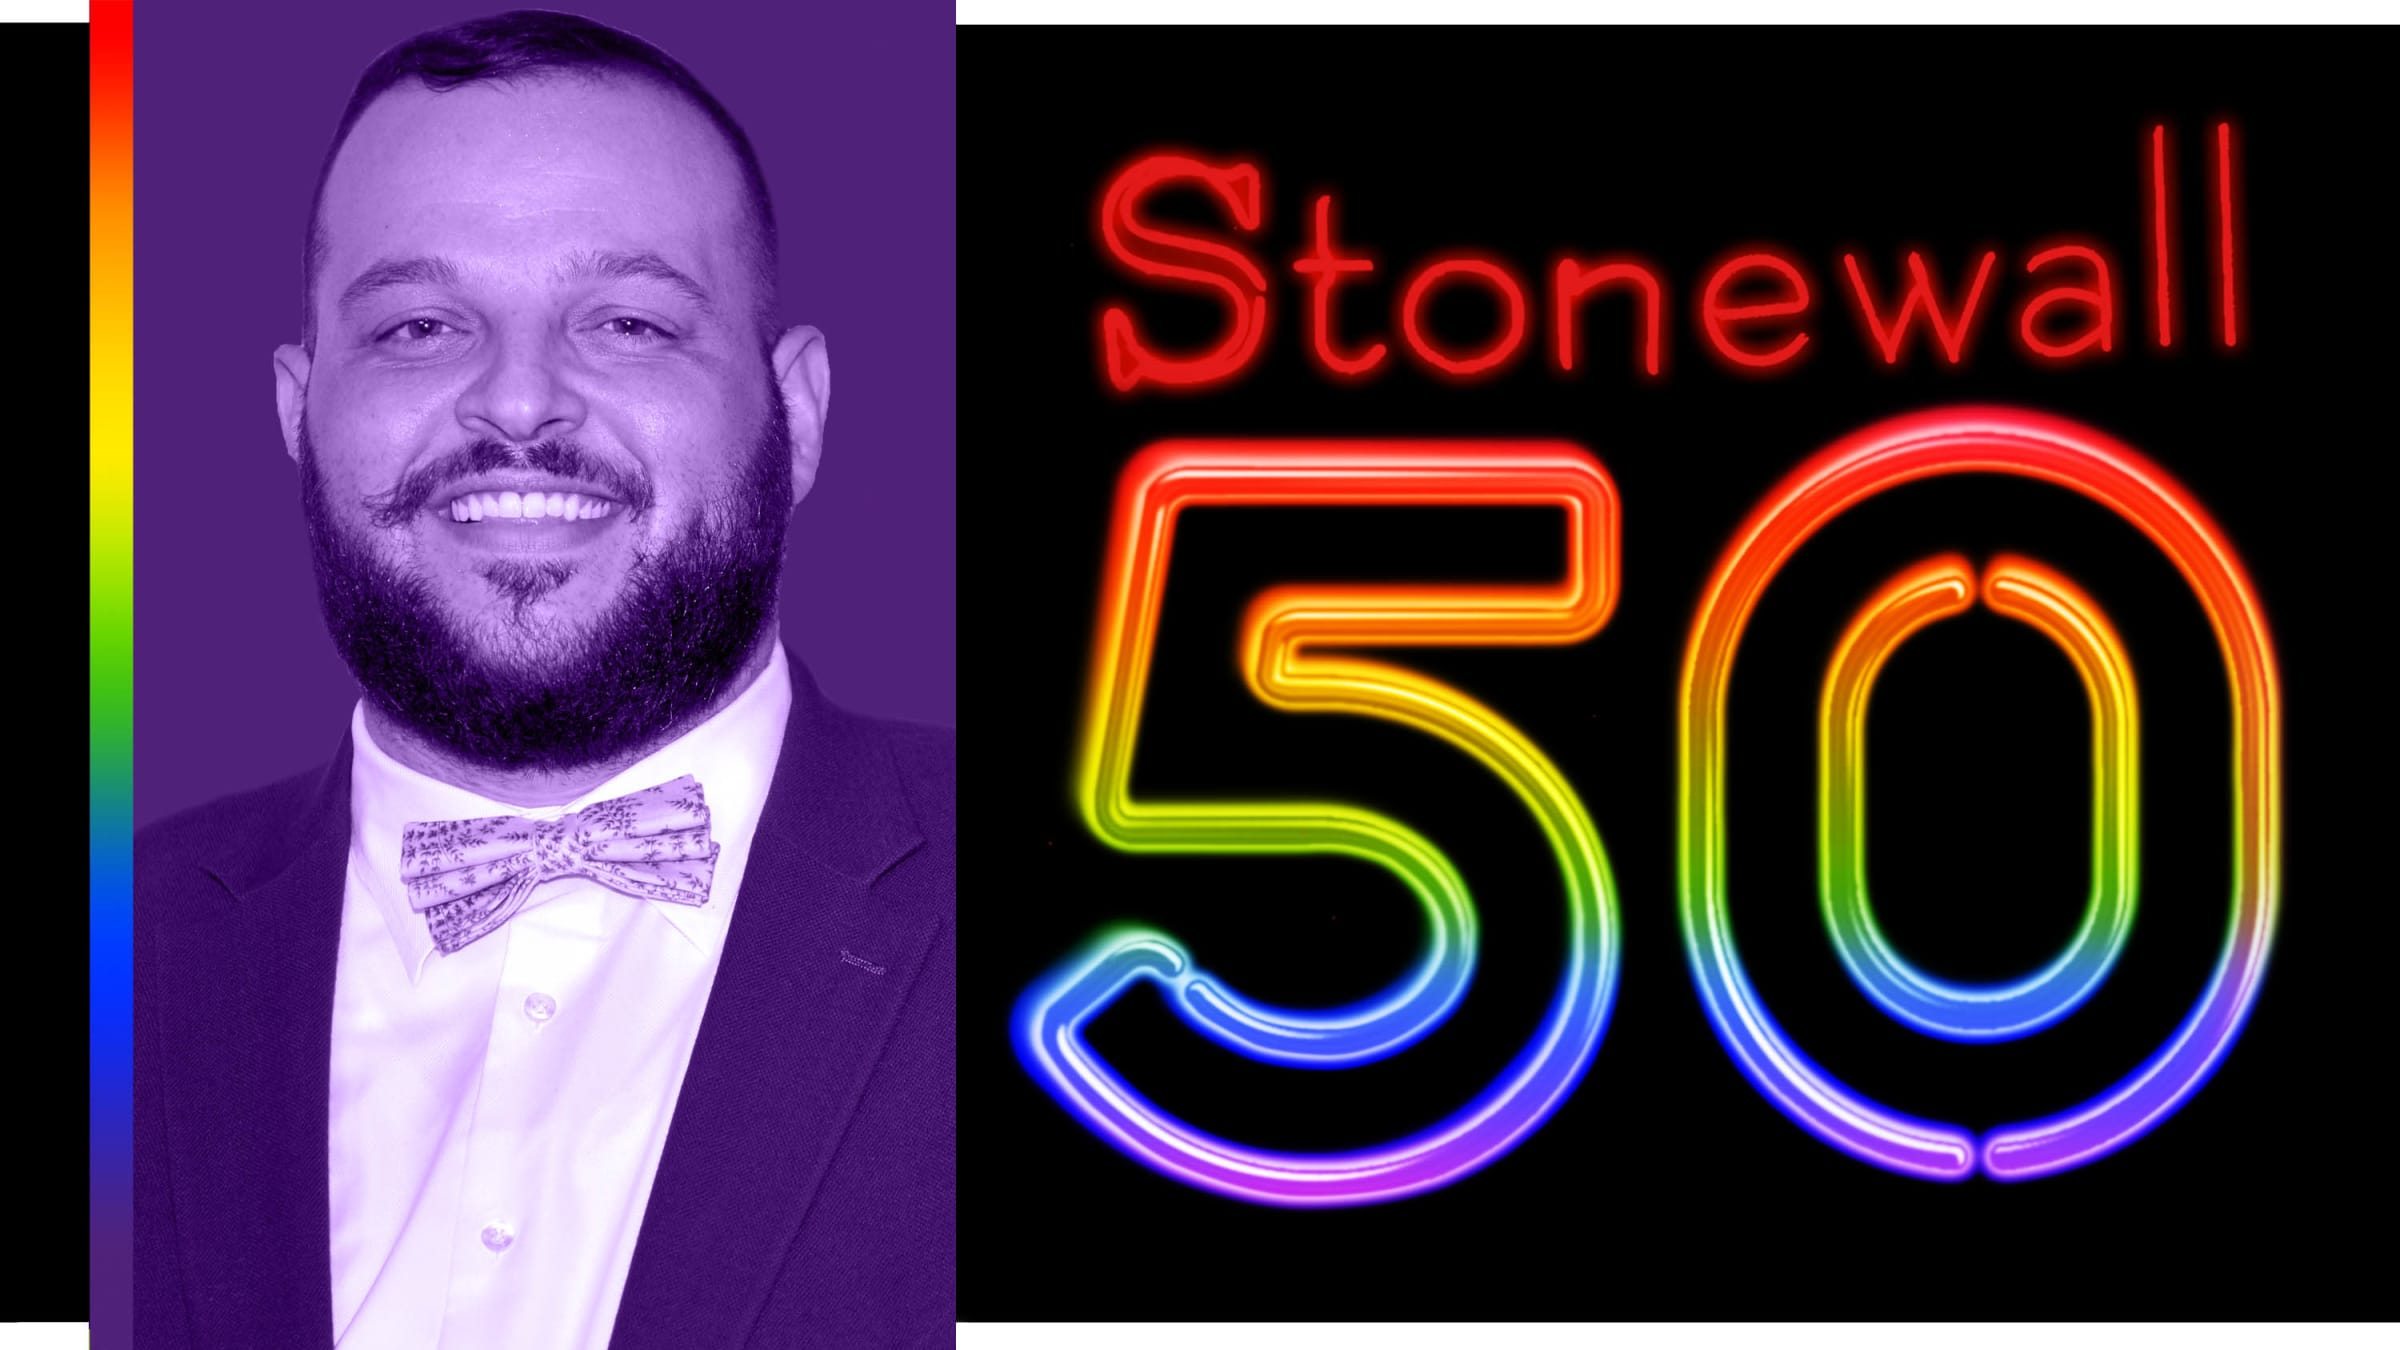 Daniel Franzese: I Would Like to See More LGBT People Realize They Don't Have to Choose Between 'Gay' and God